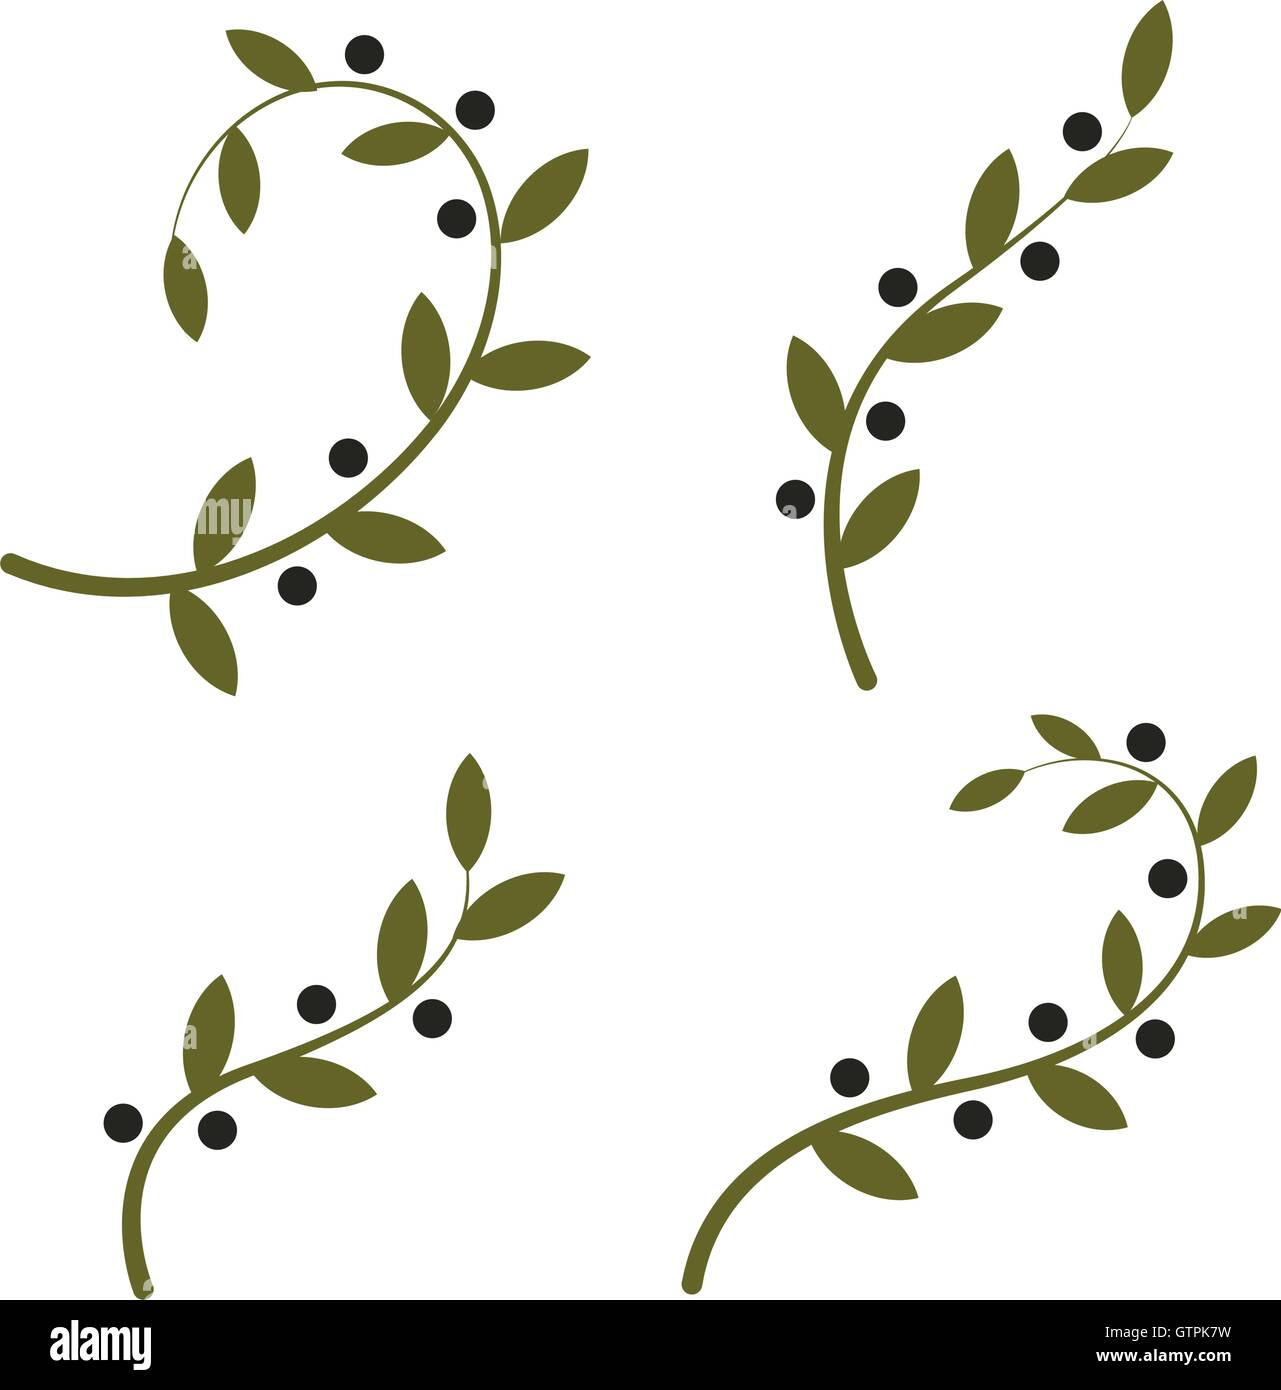 isolated olive branch vector logo stockfotos isolated olive branch vector logo bilder alamy. Black Bedroom Furniture Sets. Home Design Ideas